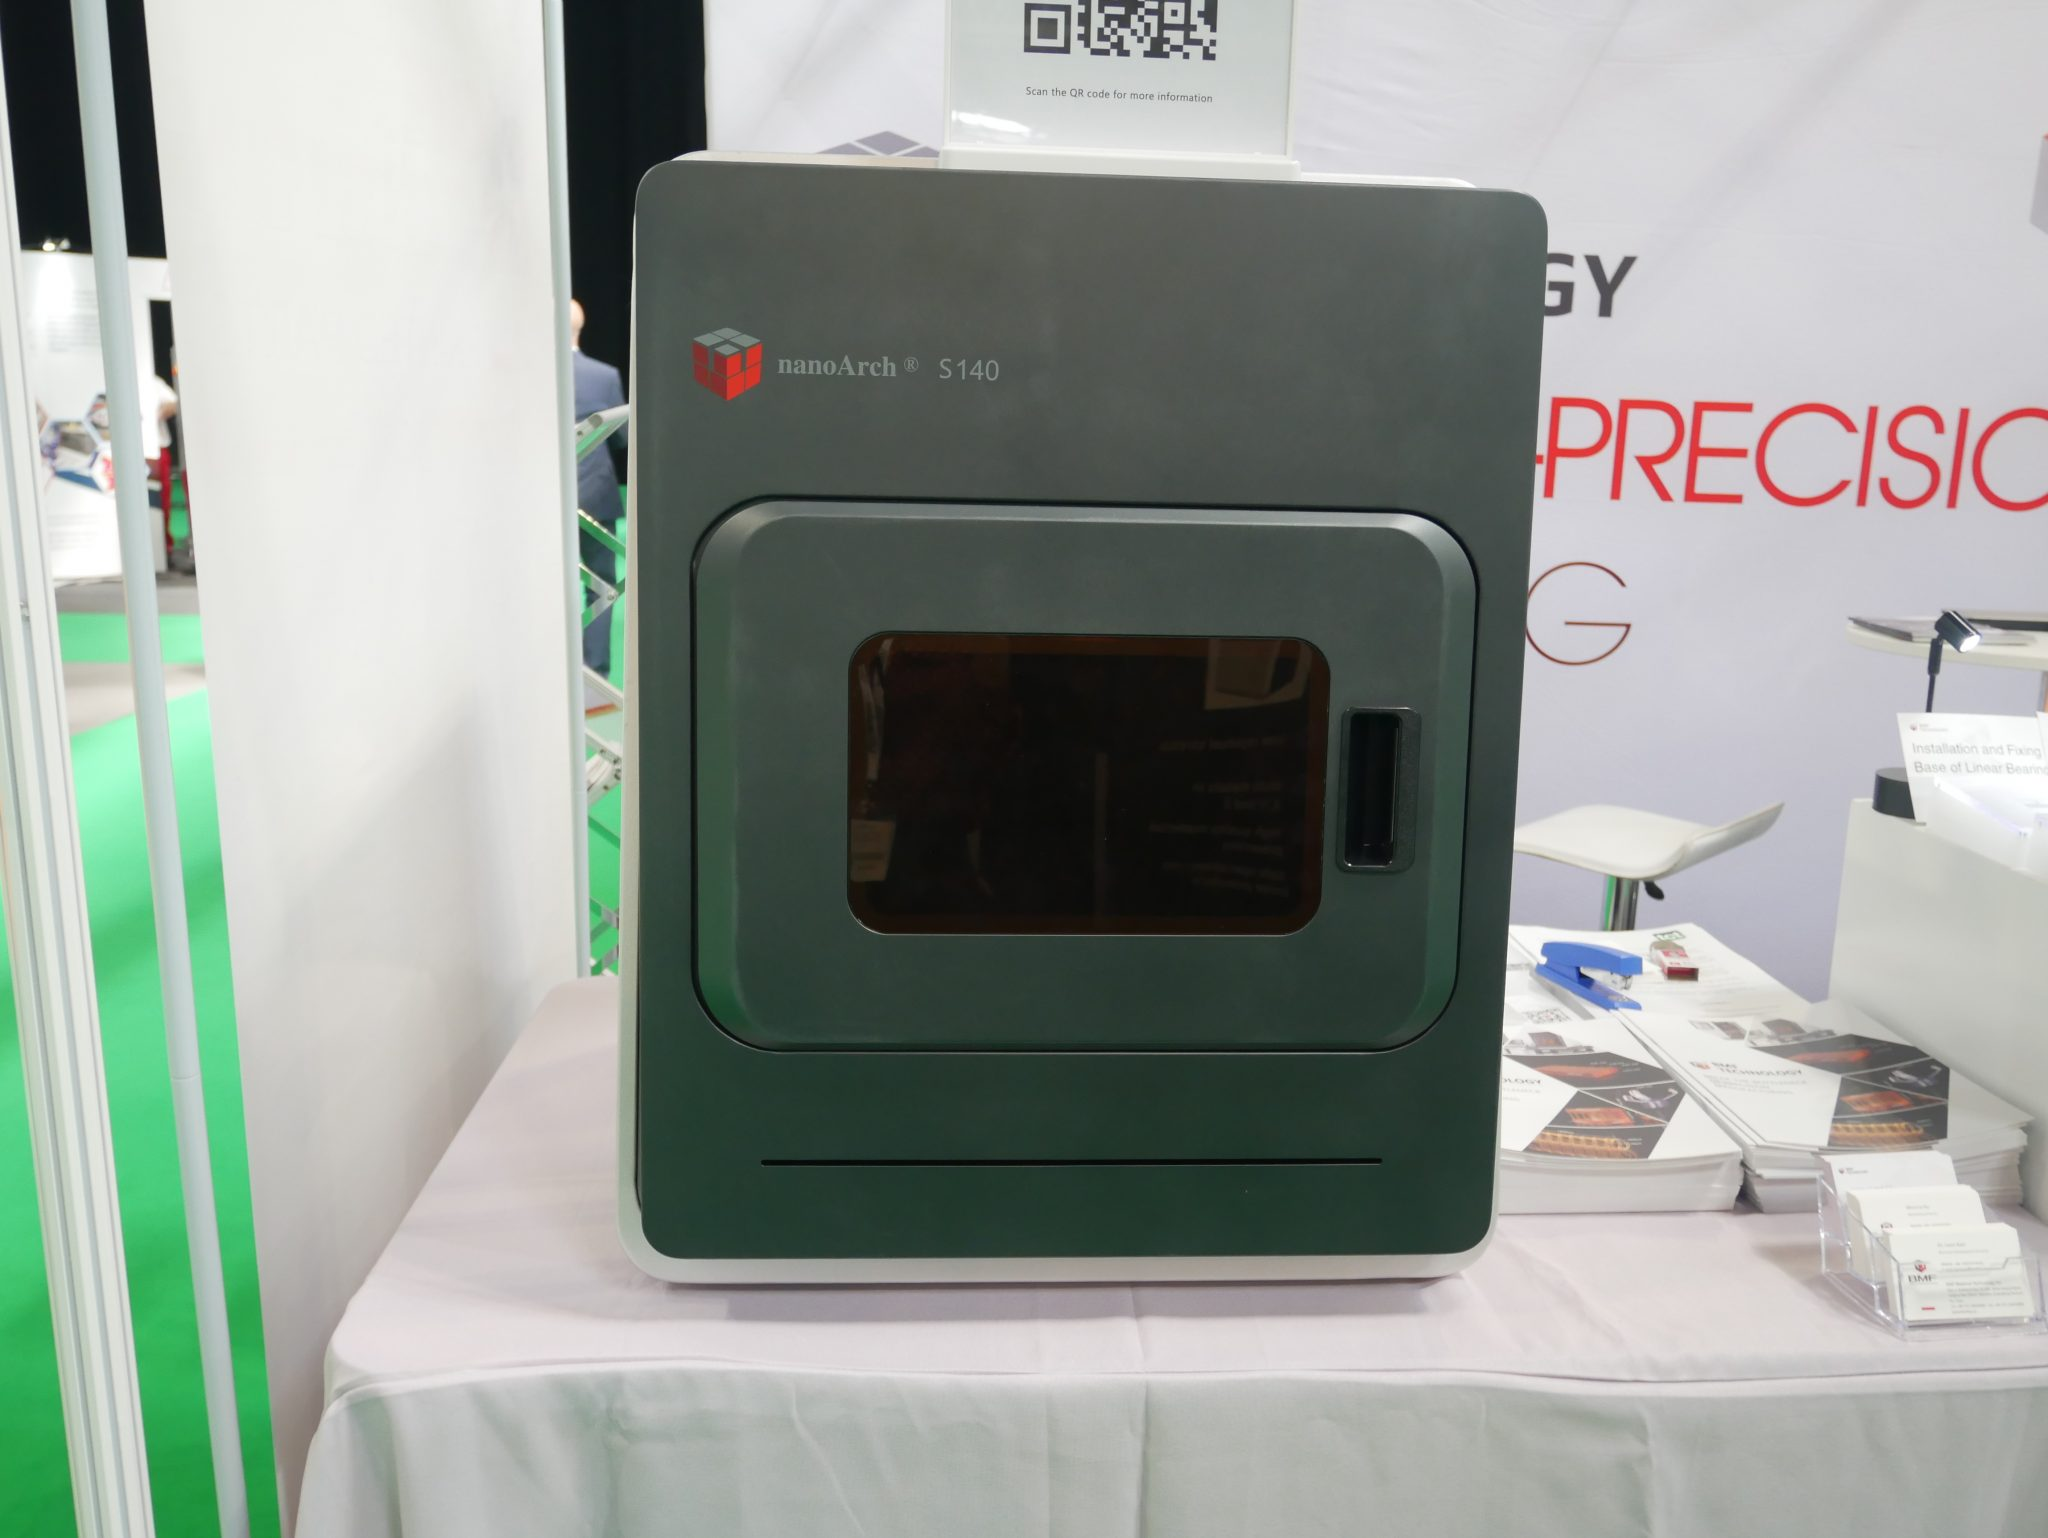 The NanoArch S140 3D printer from BMF MAterial Technology. Photo by Tia Vialva.